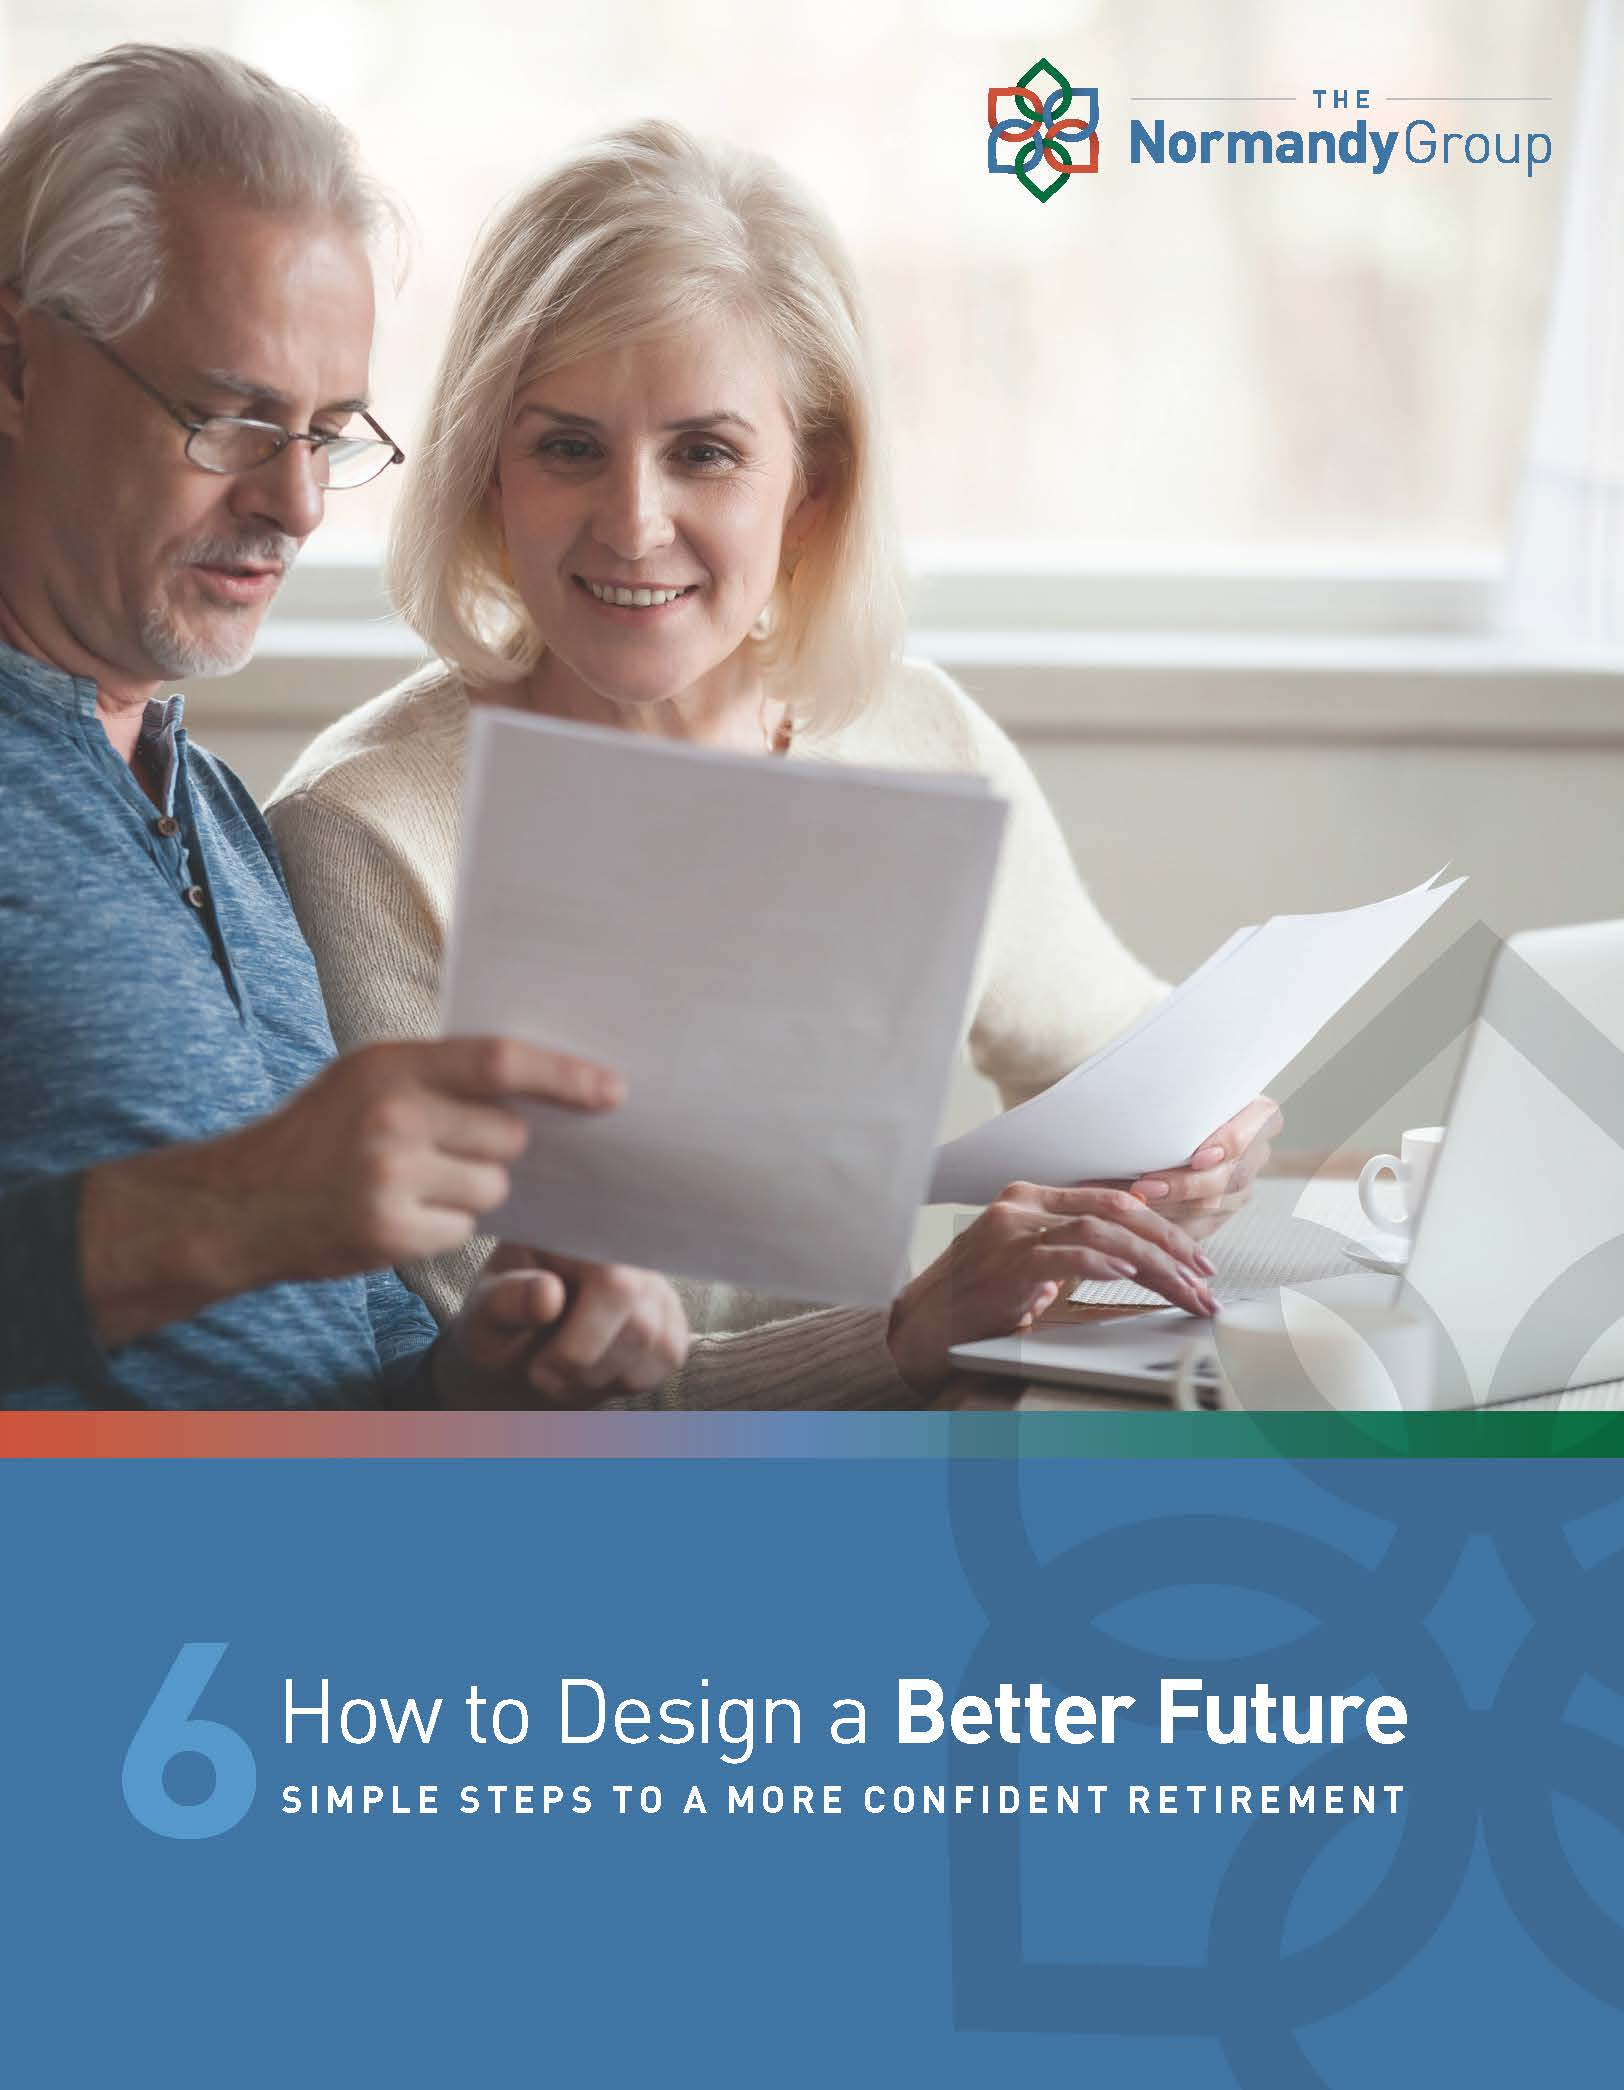 Complimentary eBook: How to Design a Better Future